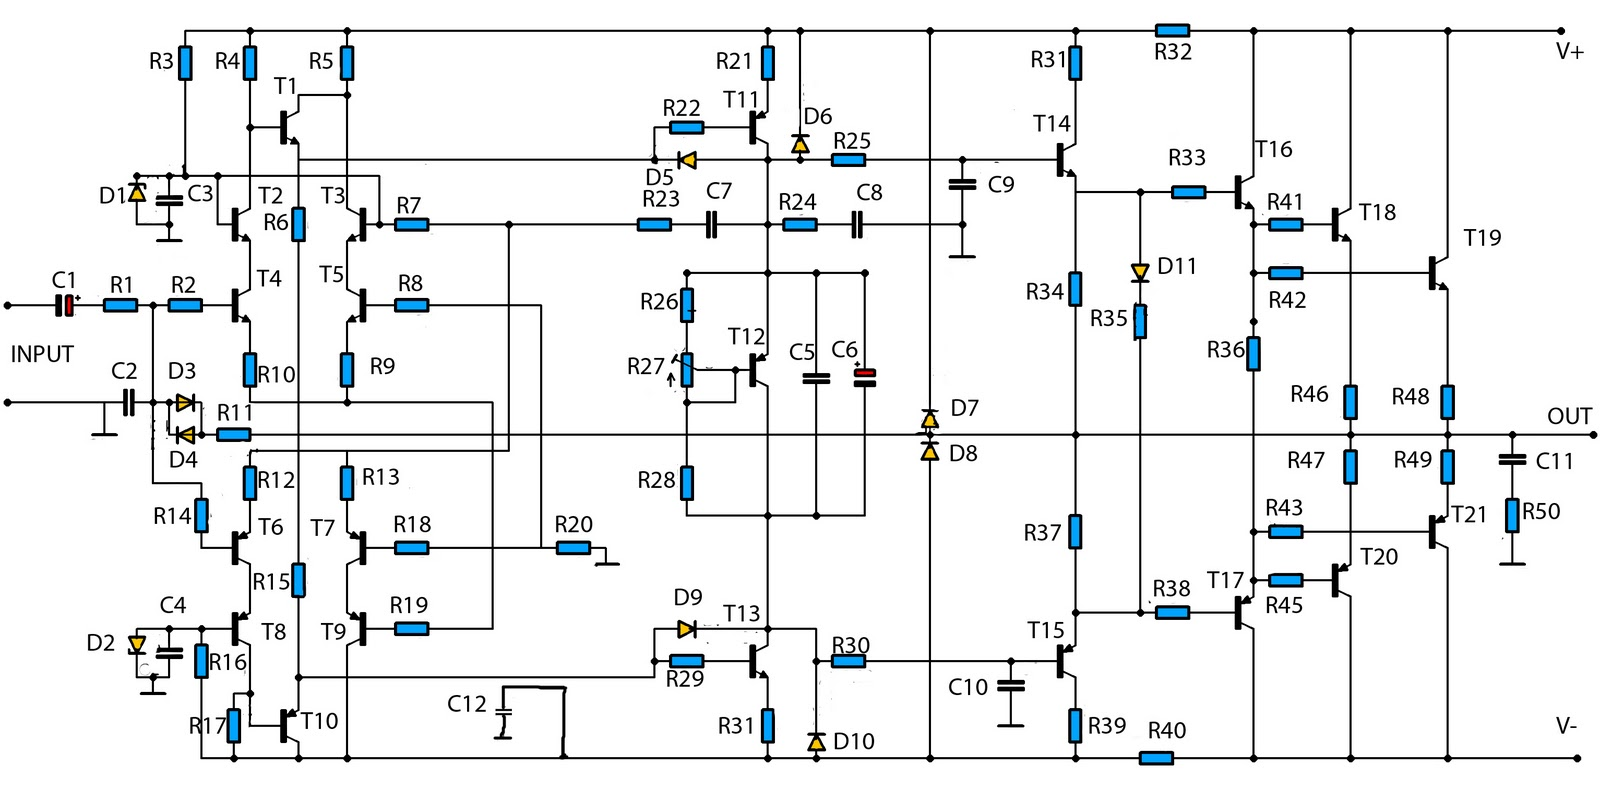 2800w high power audio amplifier under Repository-circuits